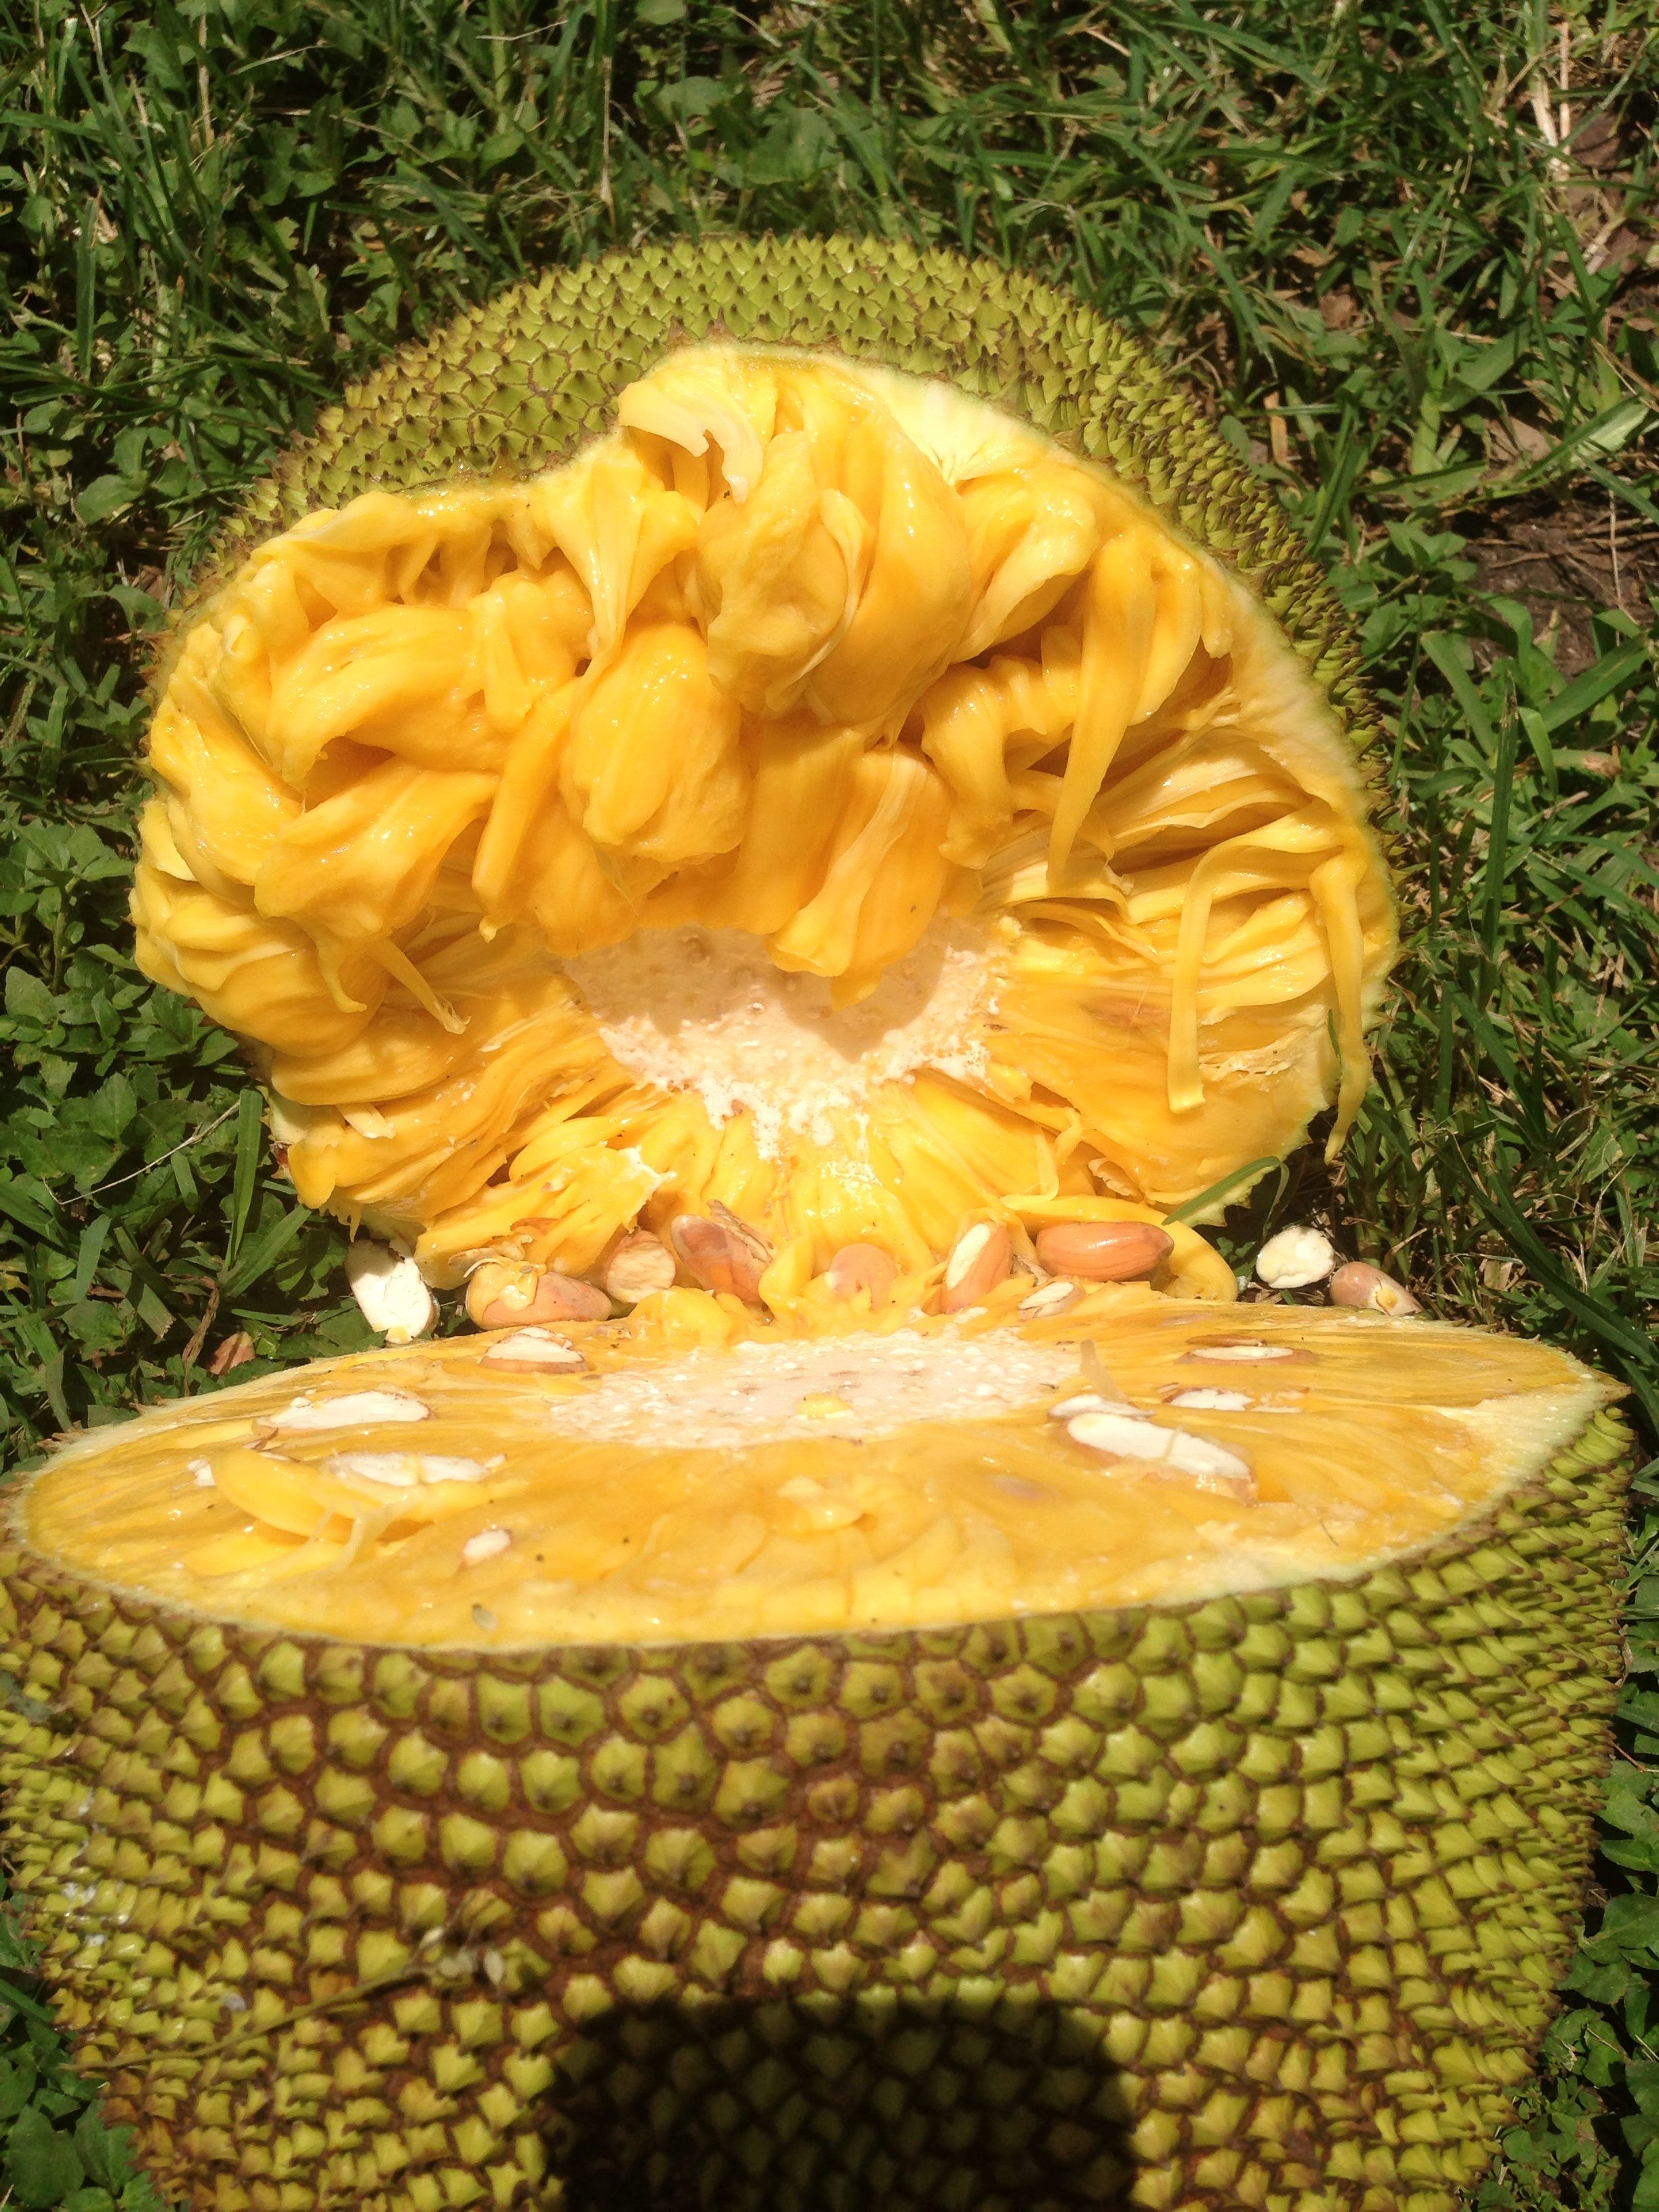 Jackfruit from Florida. I love this fruit and wish I could grow it here. Tastes like juicy fruit gum